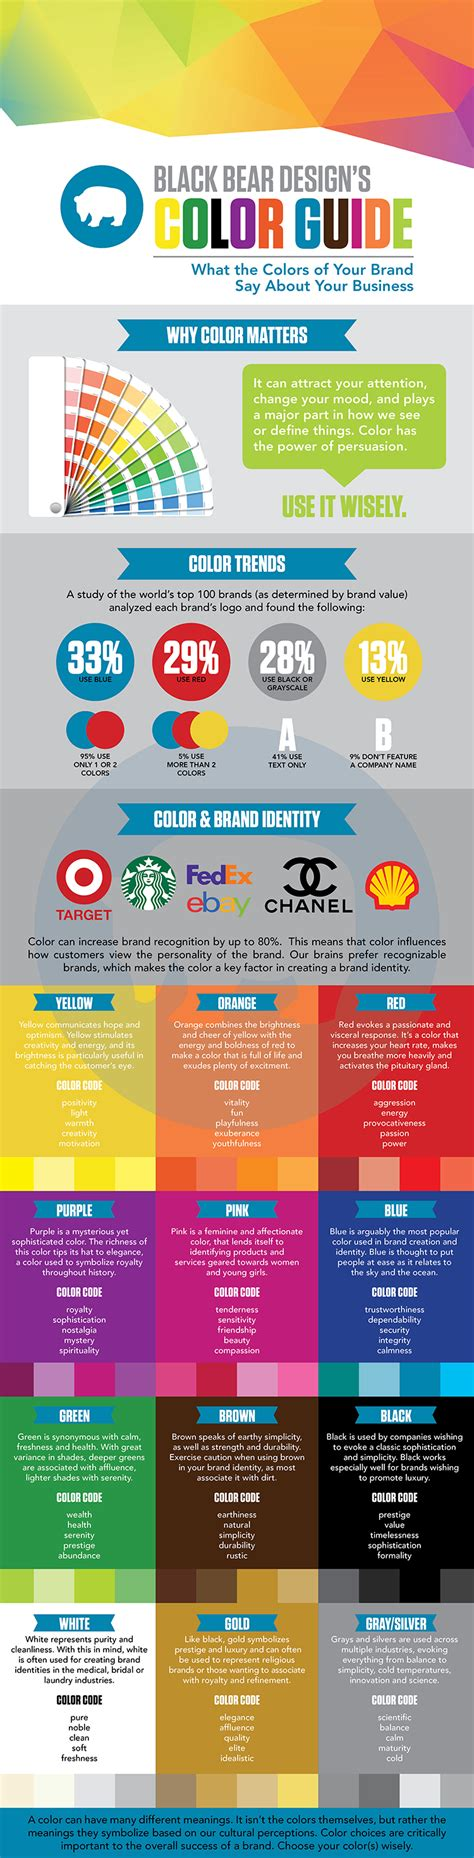 color meaninga the meaning of color in graphic design color meanings